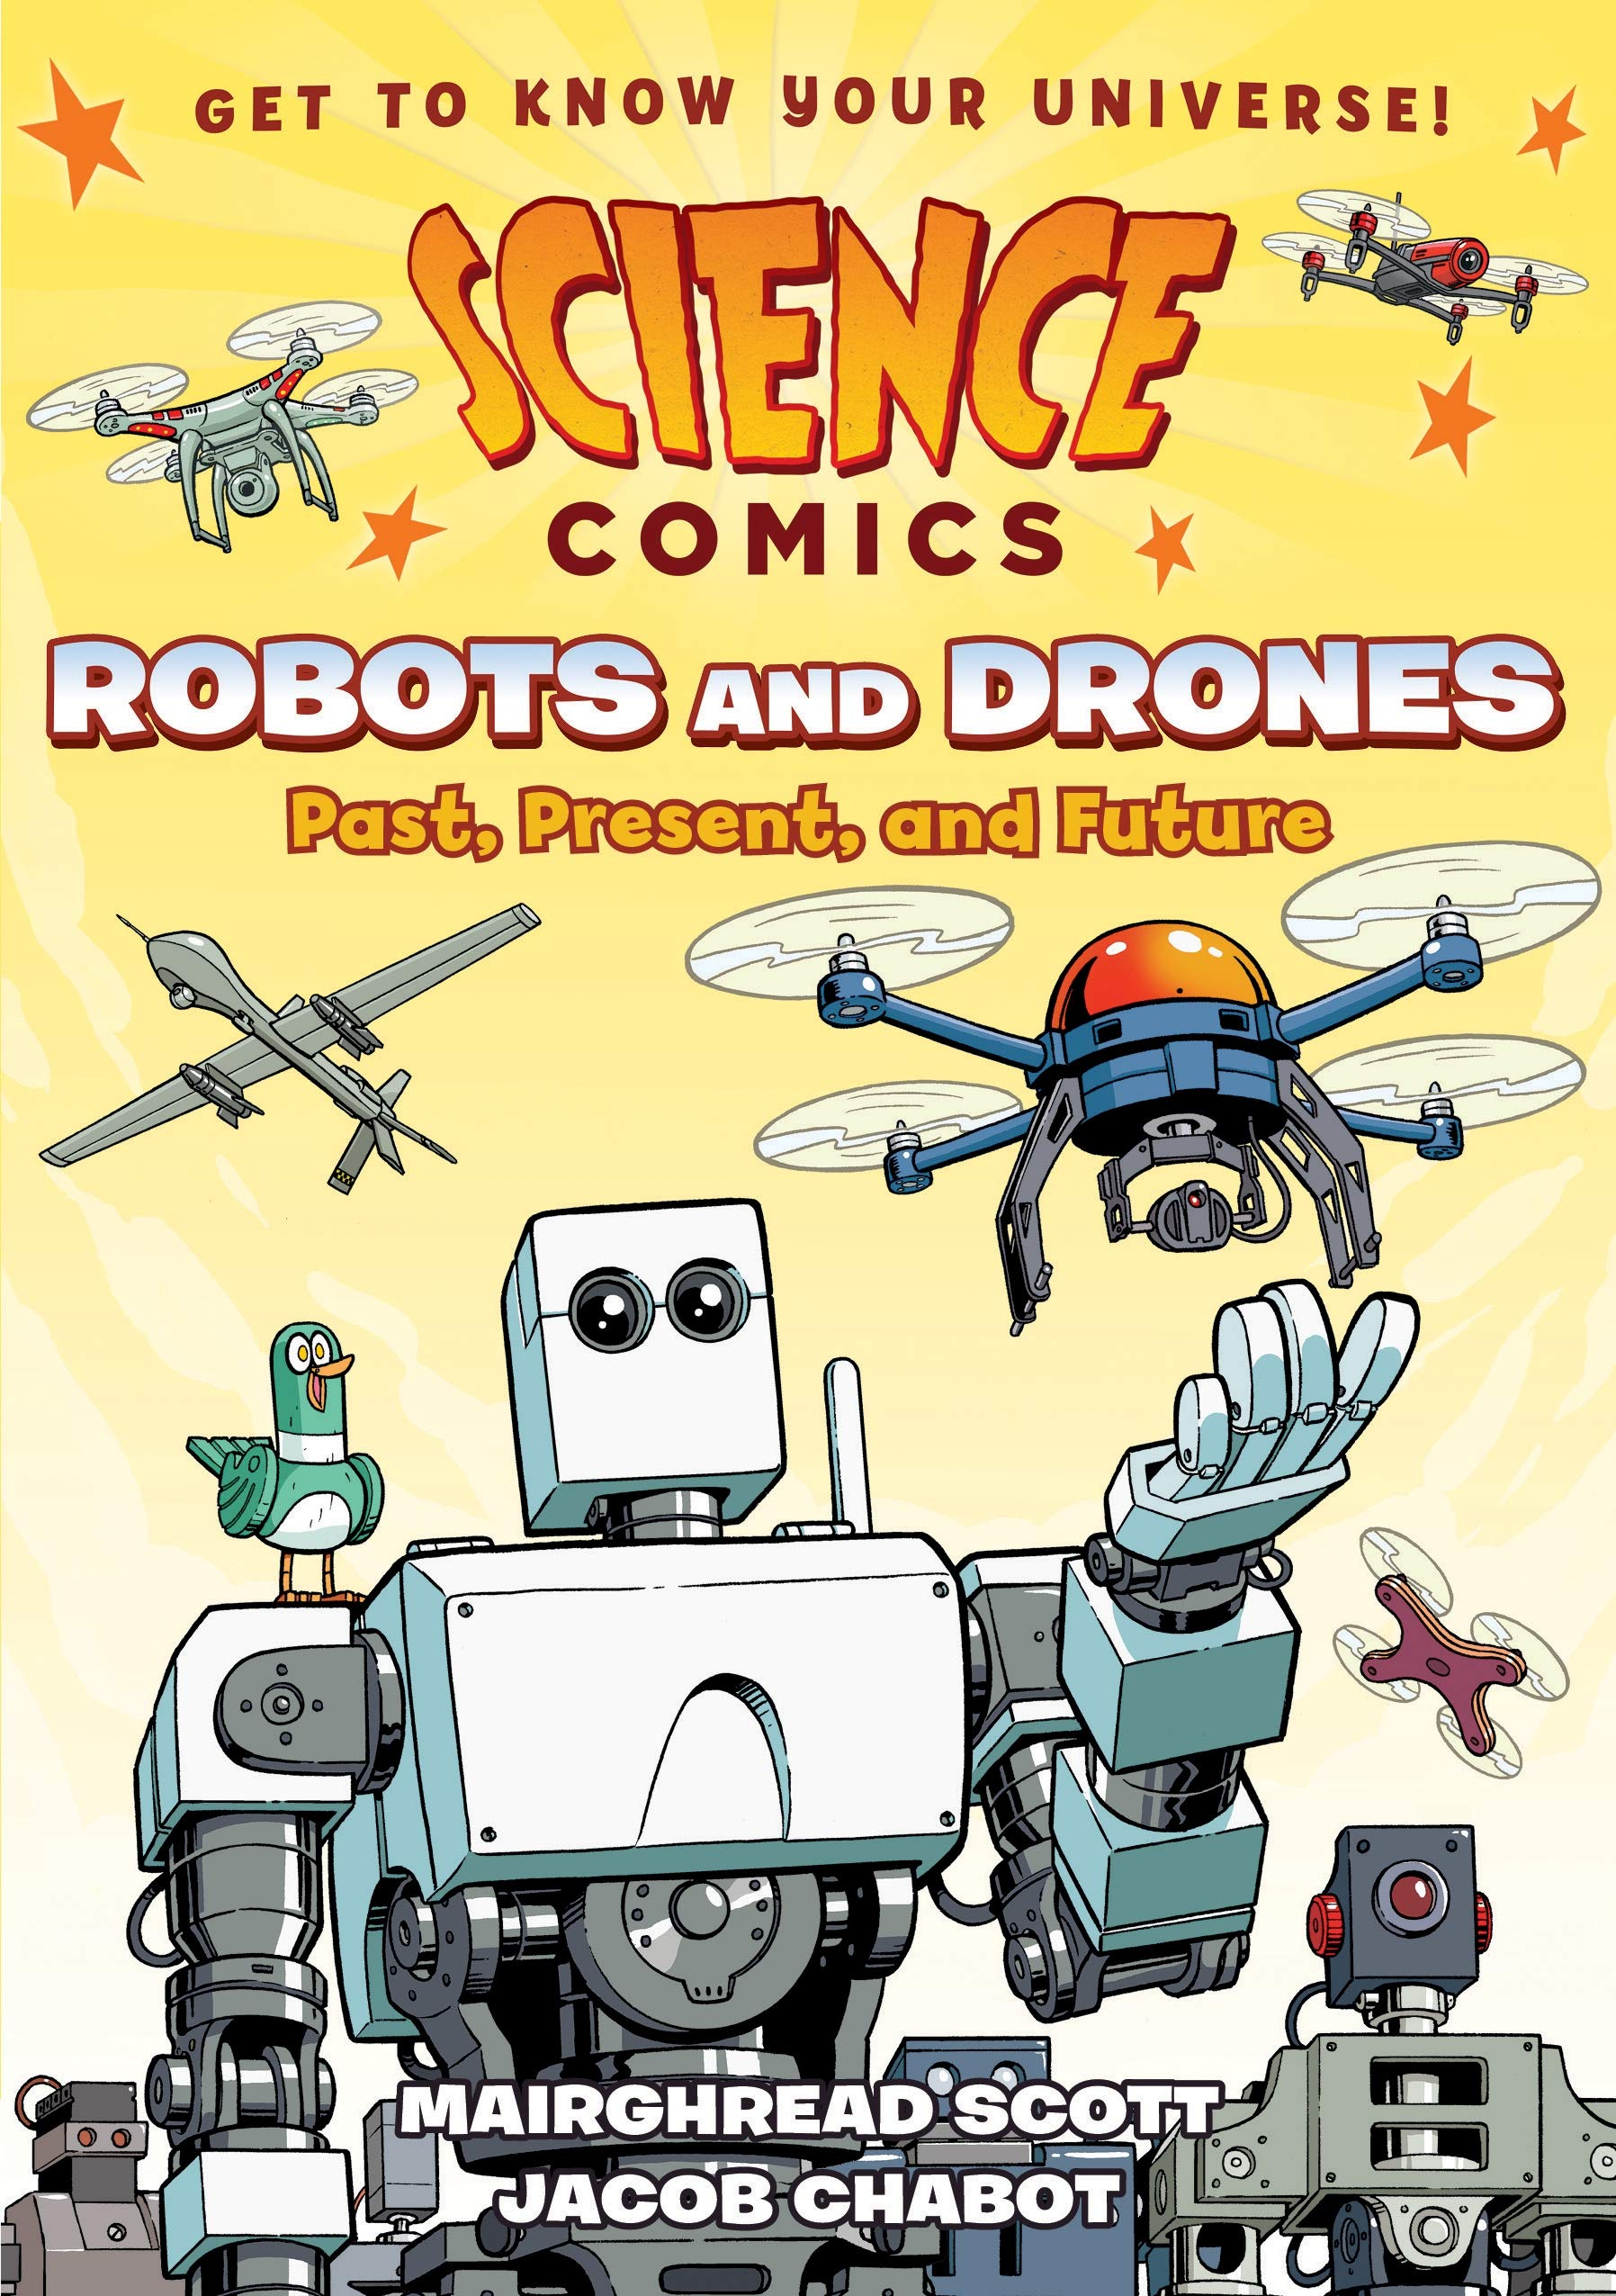 Science Comics: Robots and Drones: Past, Present, and Future: Scott,  Mairghread, Chabot, Jacob: 9781626727922: Amazon.com: Books